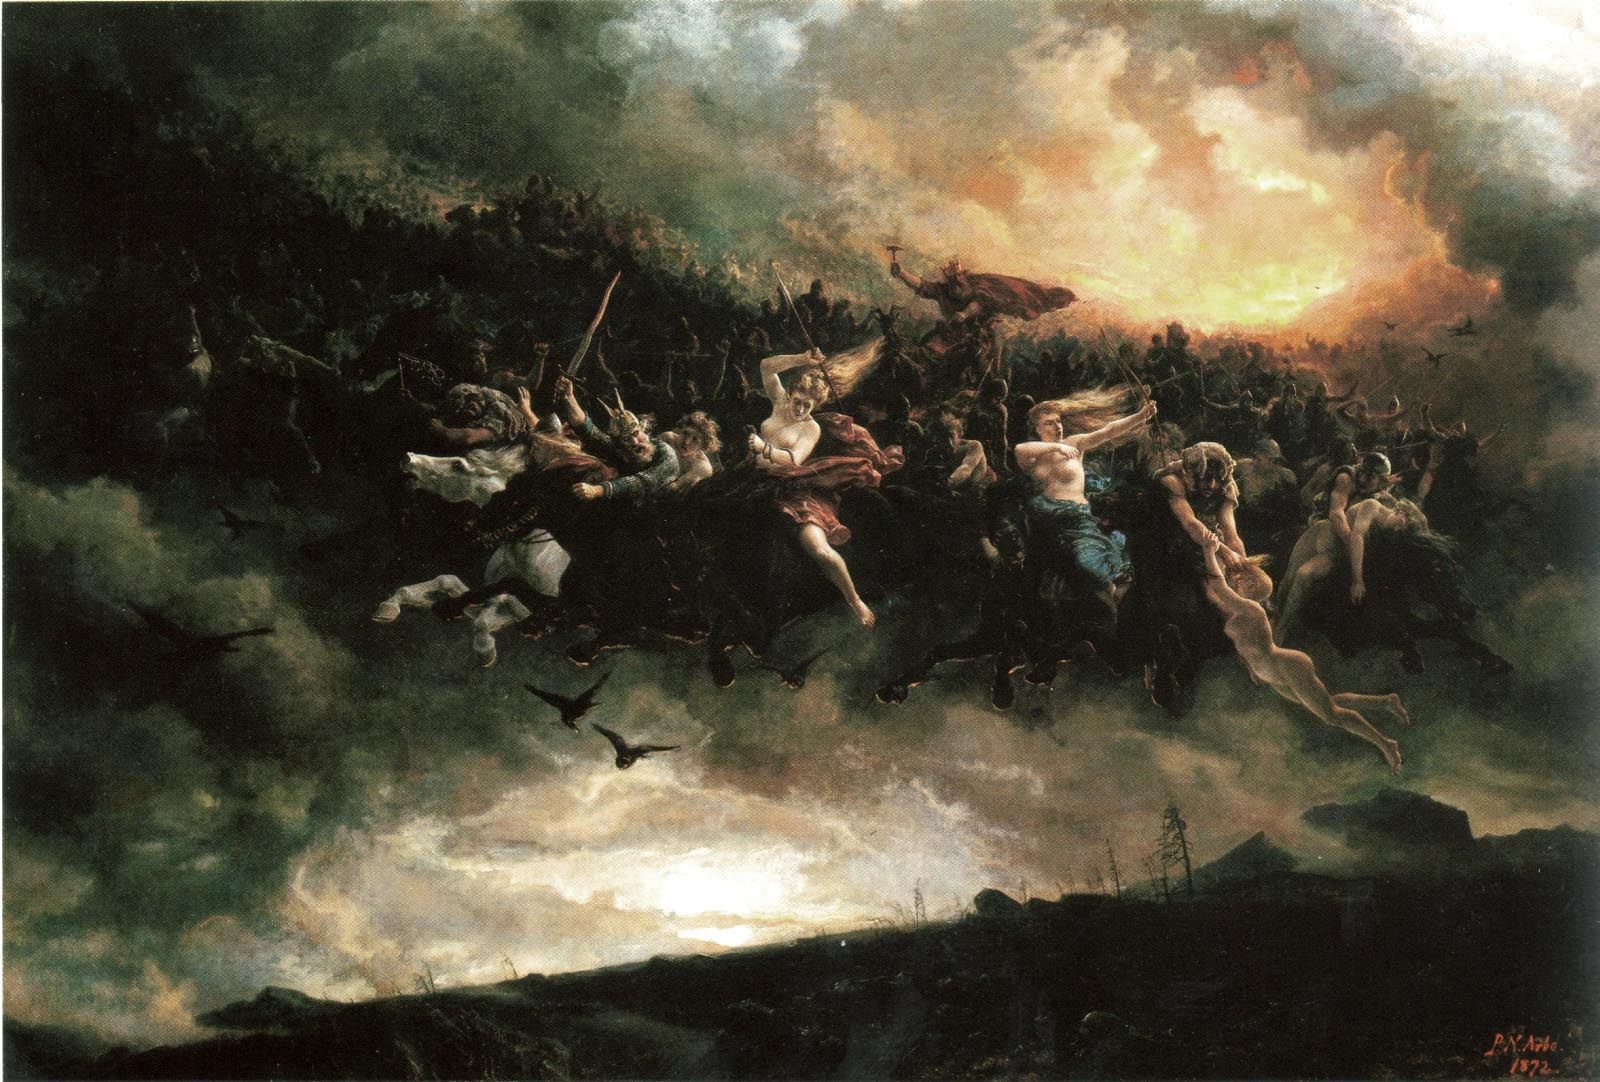 The Wild Hunt - Peter Nicolai Arbo (1872)